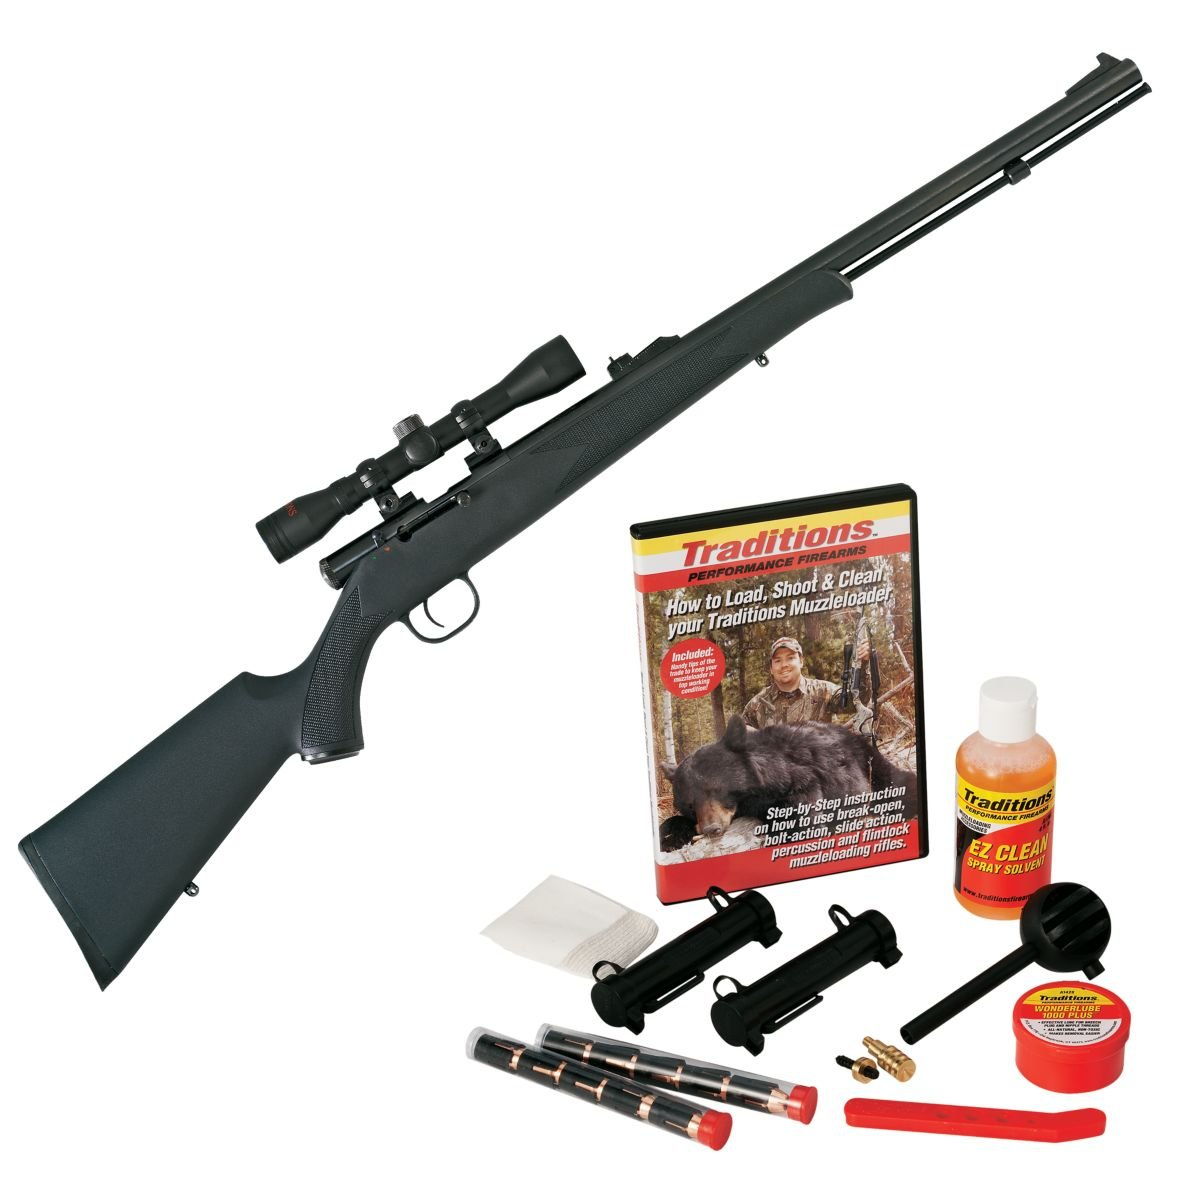 Traditions Timber Ridge  50-Caliber Muzzleloader with Redi-Pak and Scope -  $129 88 (Free 2-Day S/H over $50)